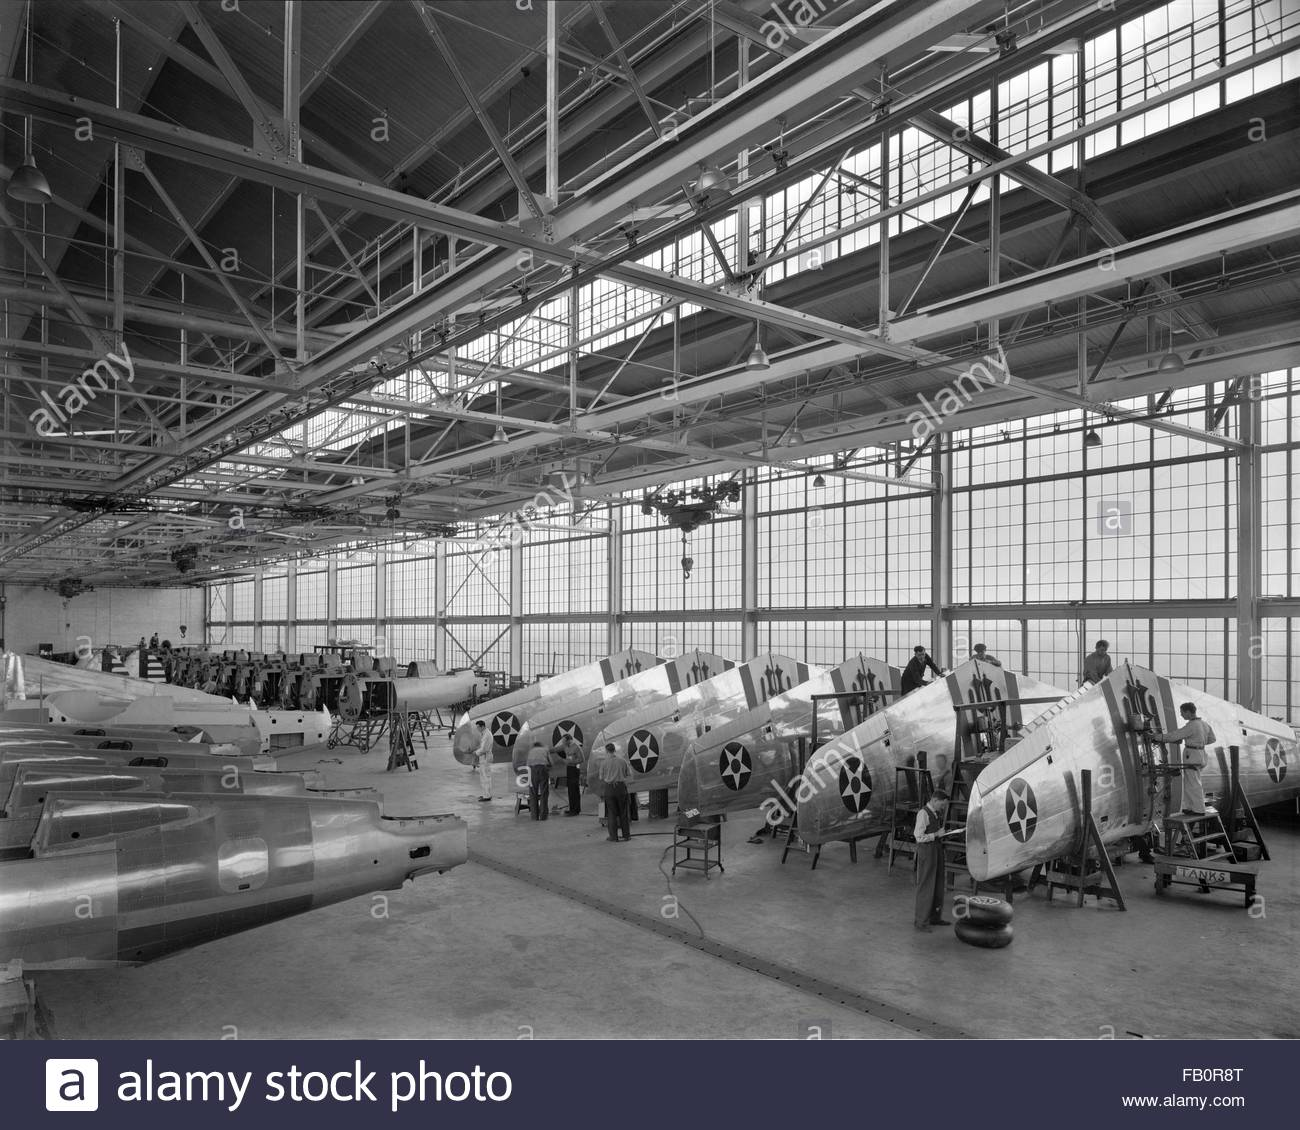 Curtiss-Wright plant in Buffalo (N. Y.), 1939 Apr. 12. Interior, rows of airplane wings. - Stock Image